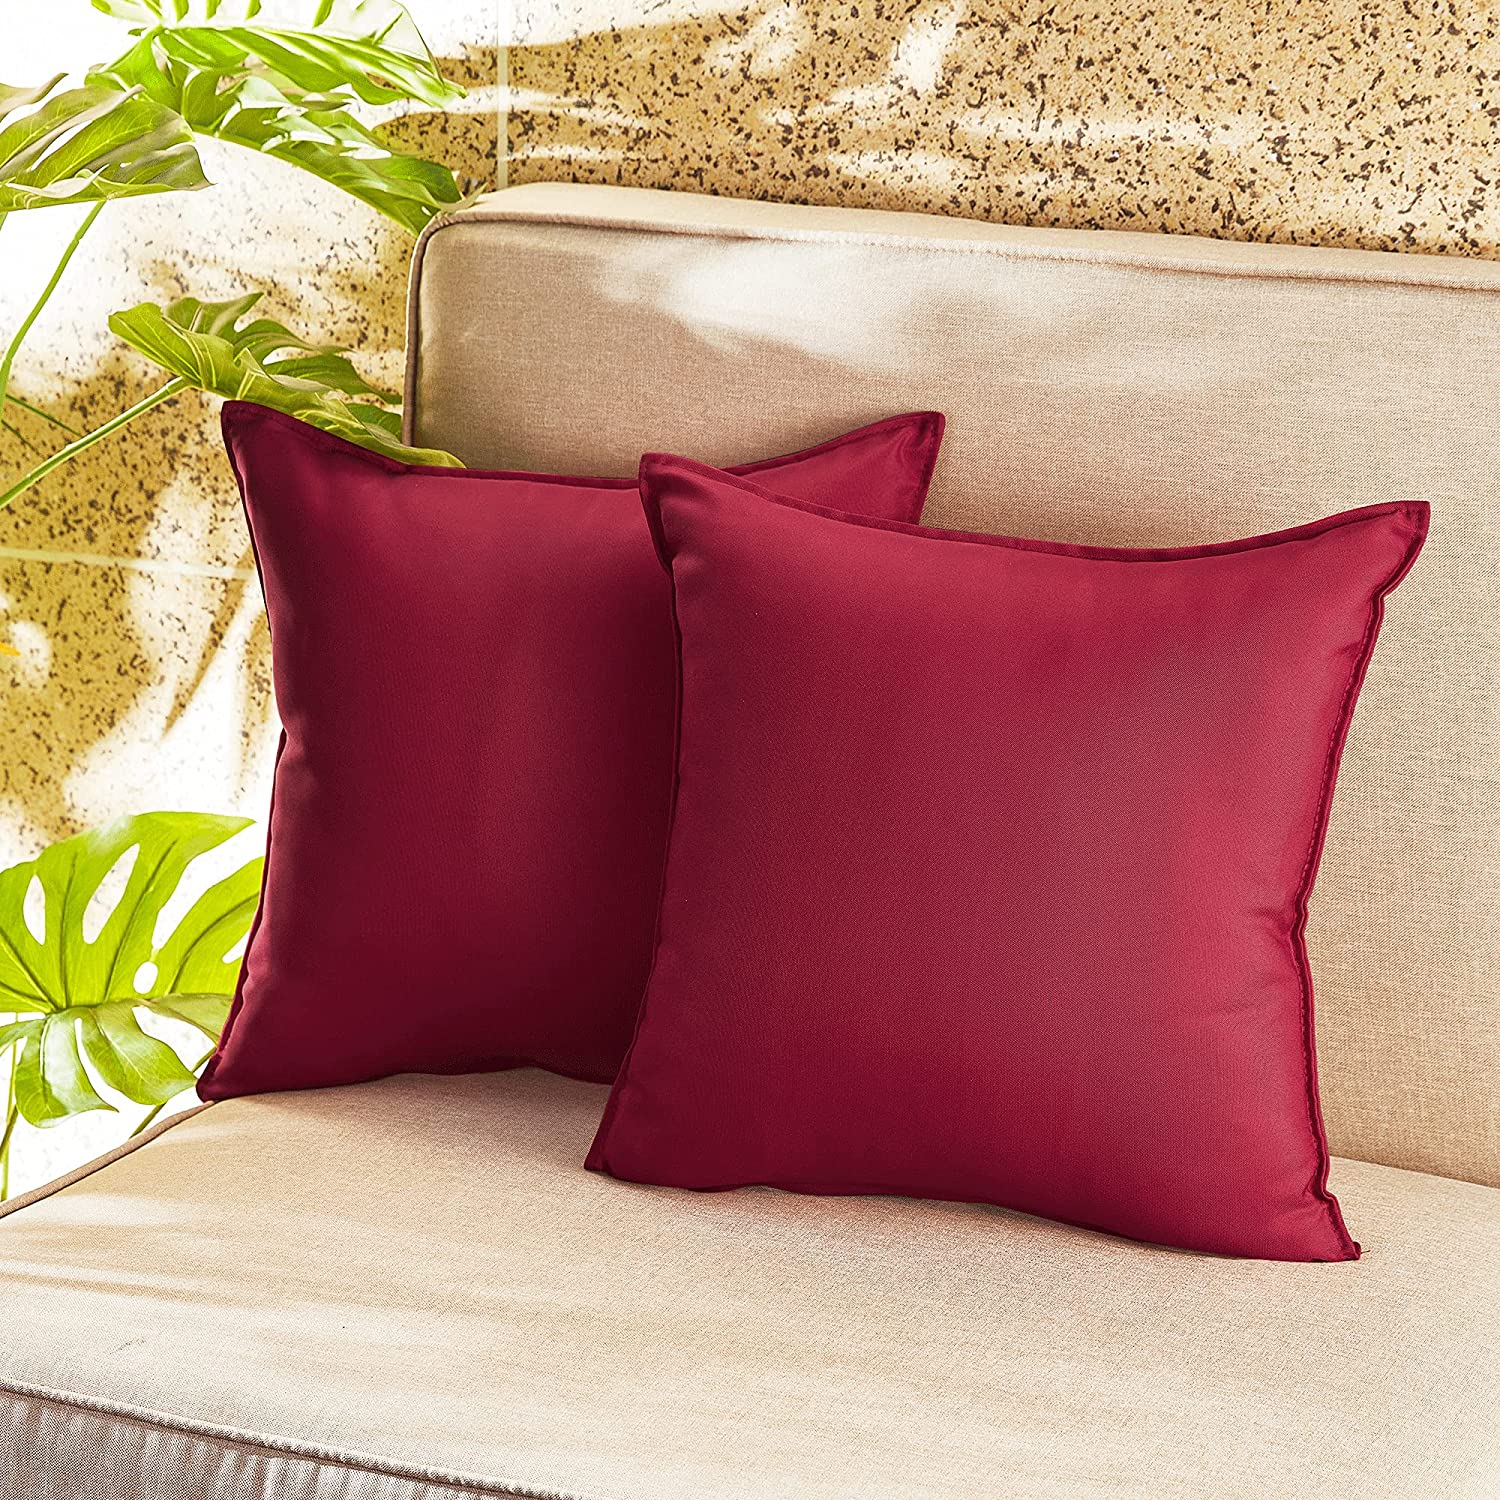 RYB HOME Waterproof Outdoor Pillow Covers Square Cushion Throw Pillowcase for Patio Couch Dining Chair Picnic Swimming Poolside Bench Sumbrella, 20x20 inch, Red, 2 Pcs